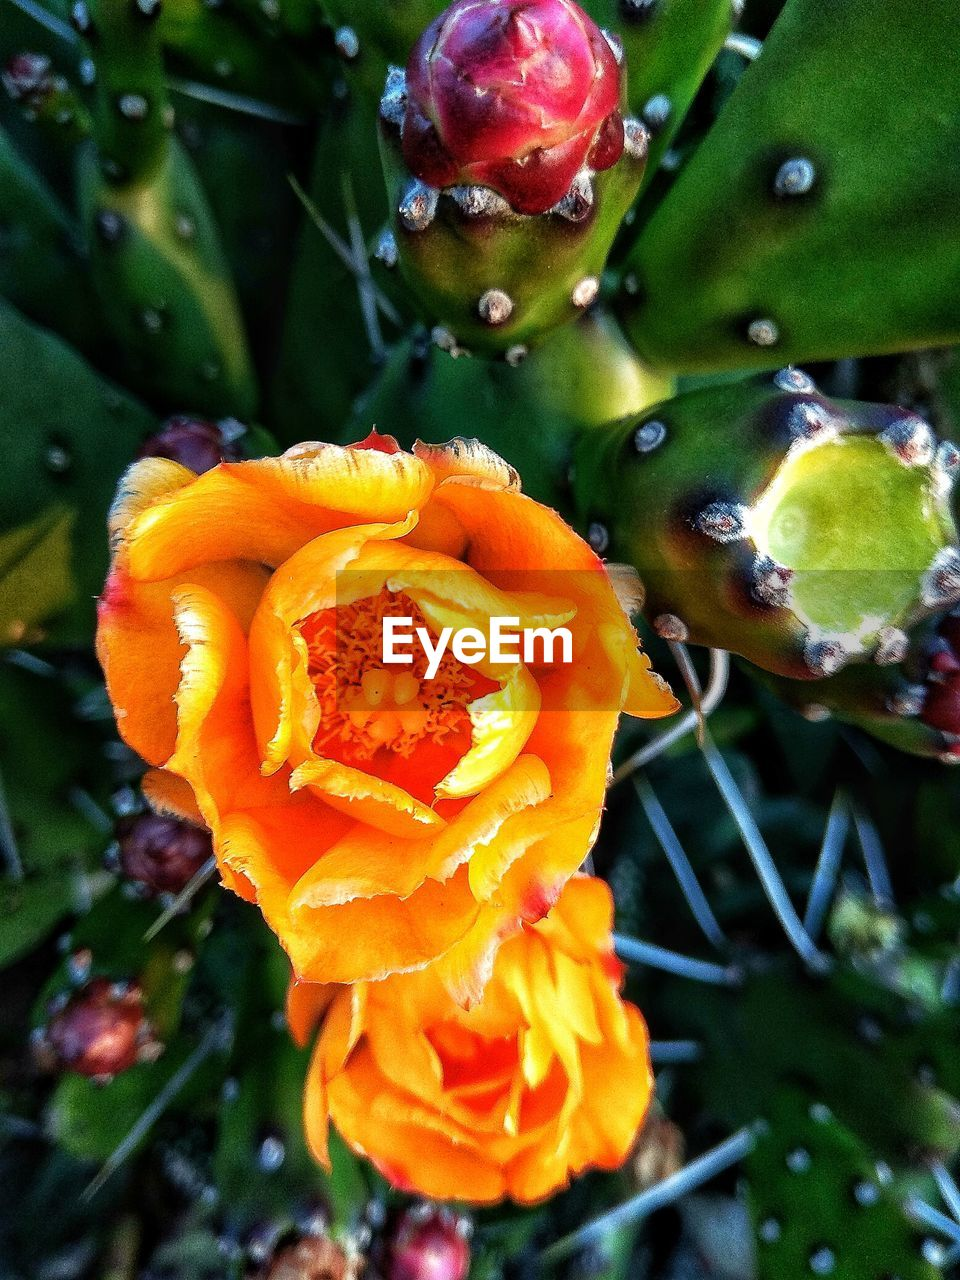 freshness, flower, beauty in nature, nature, growth, fragility, petal, orange color, outdoors, close-up, drop, no people, day, plant, flower head, blooming